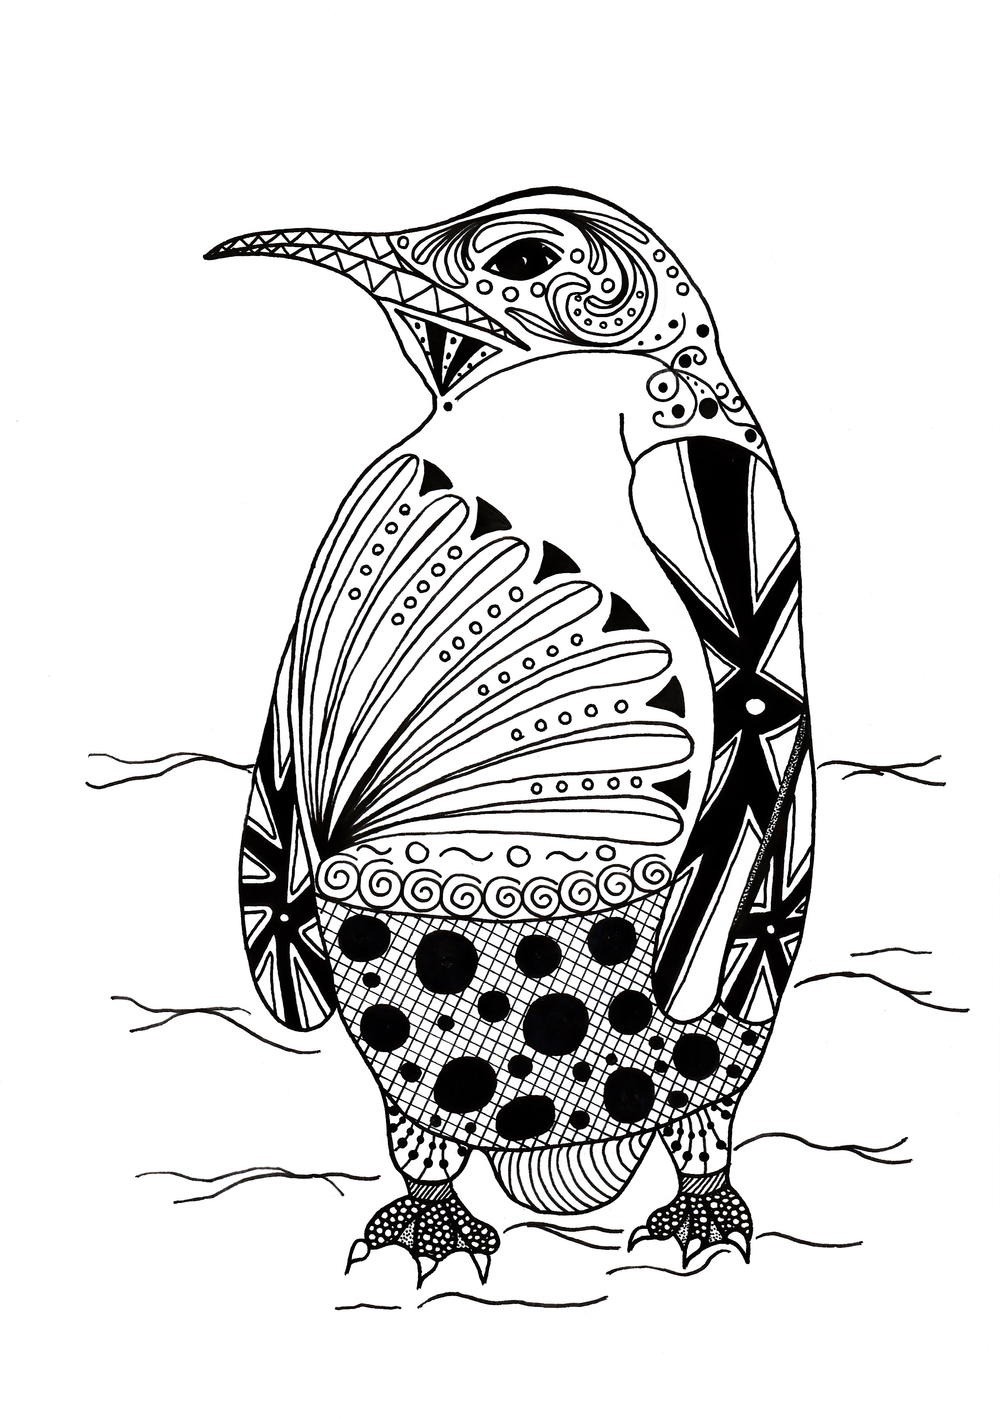 intricate penguin adult coloring page. Black Bedroom Furniture Sets. Home Design Ideas